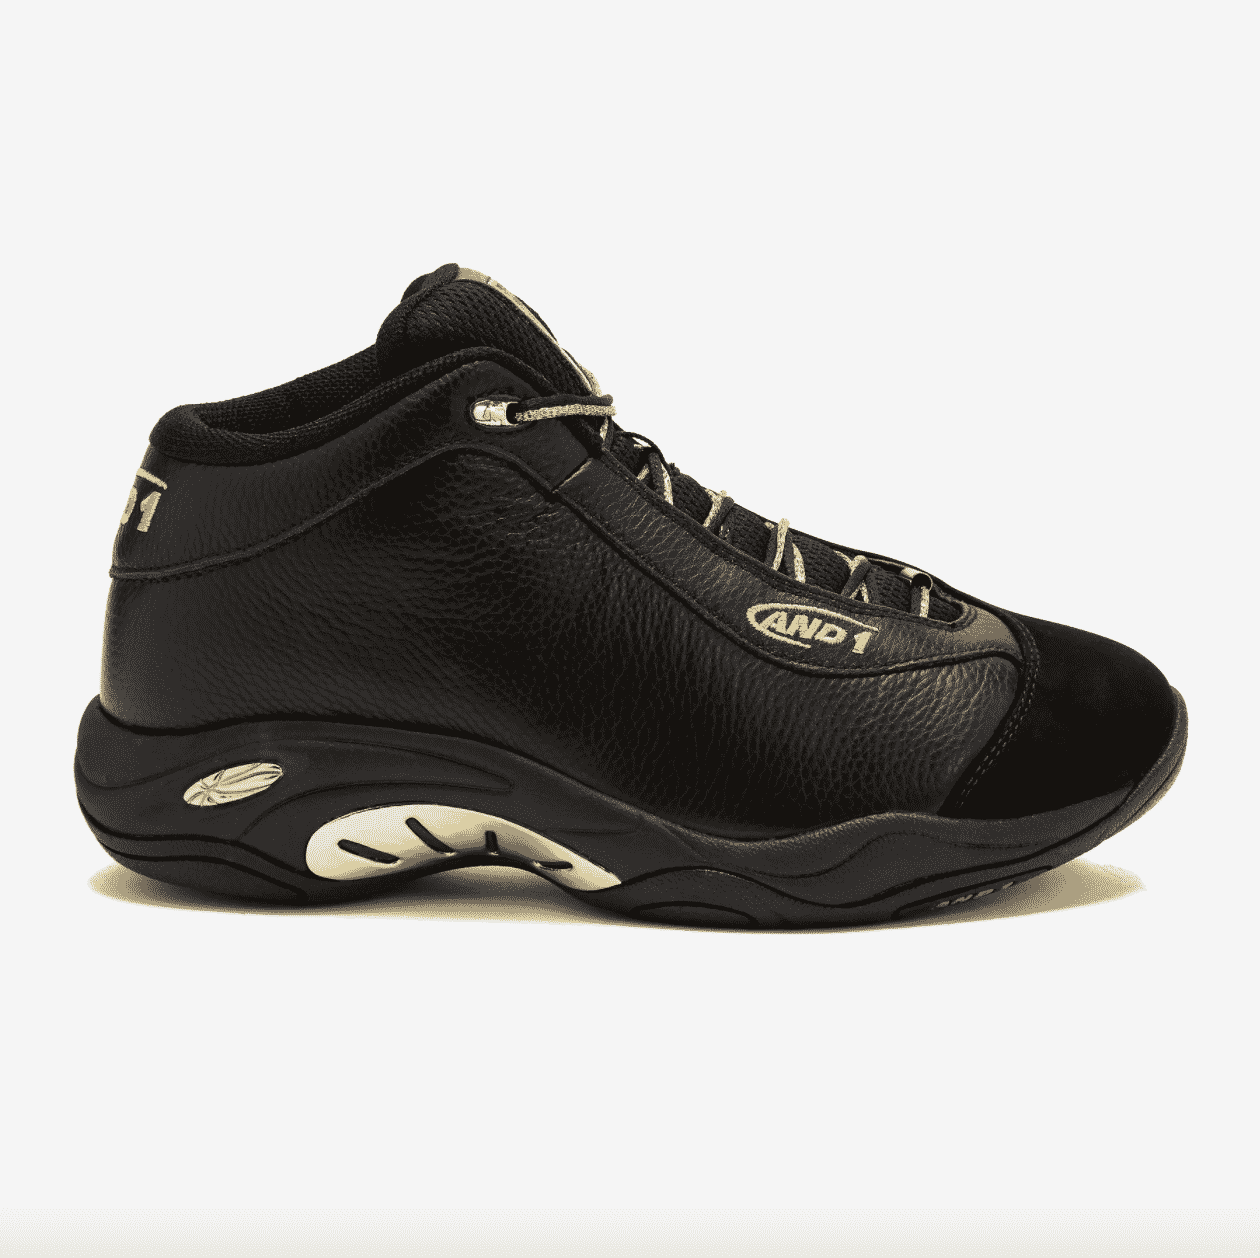 and1-tai-chi-chaussures-de-volley-volleypack-1